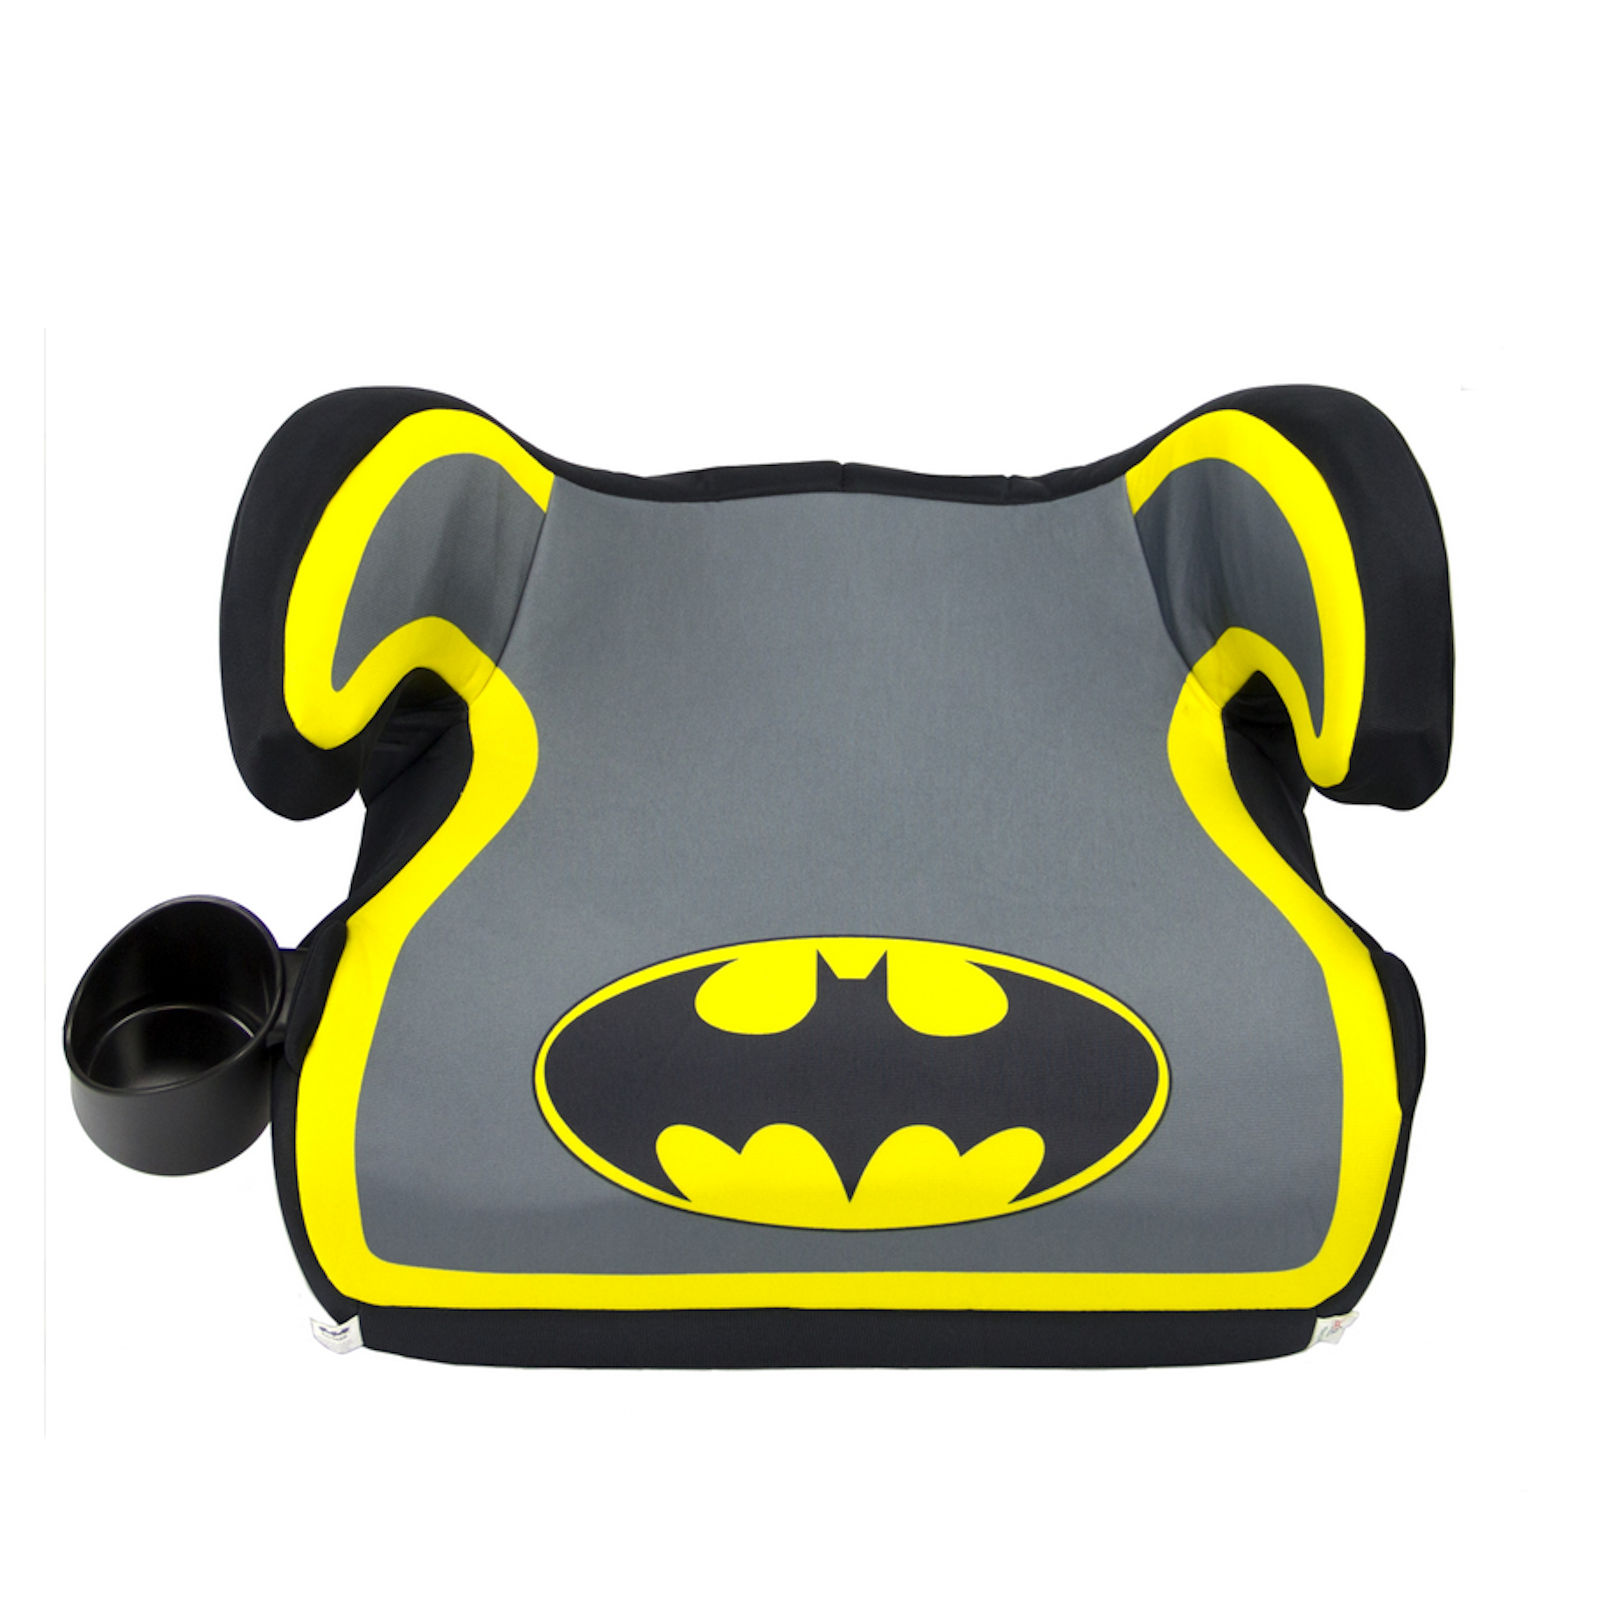 Batman Car Booster Seat Review